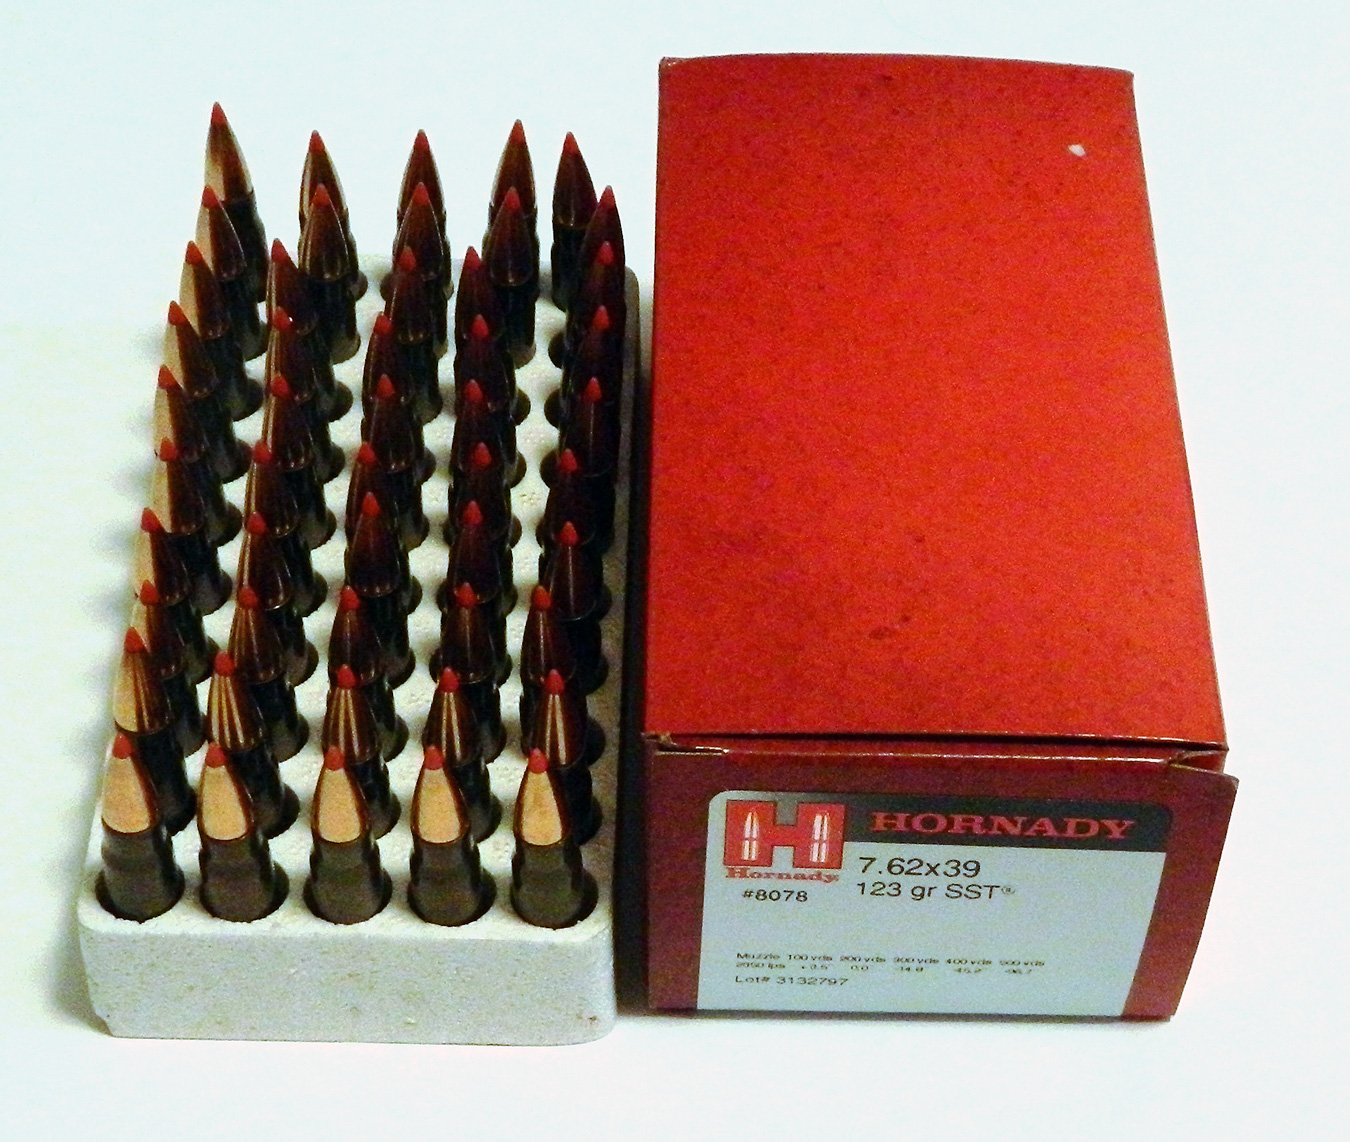 Hornady .223 ammunition with red box